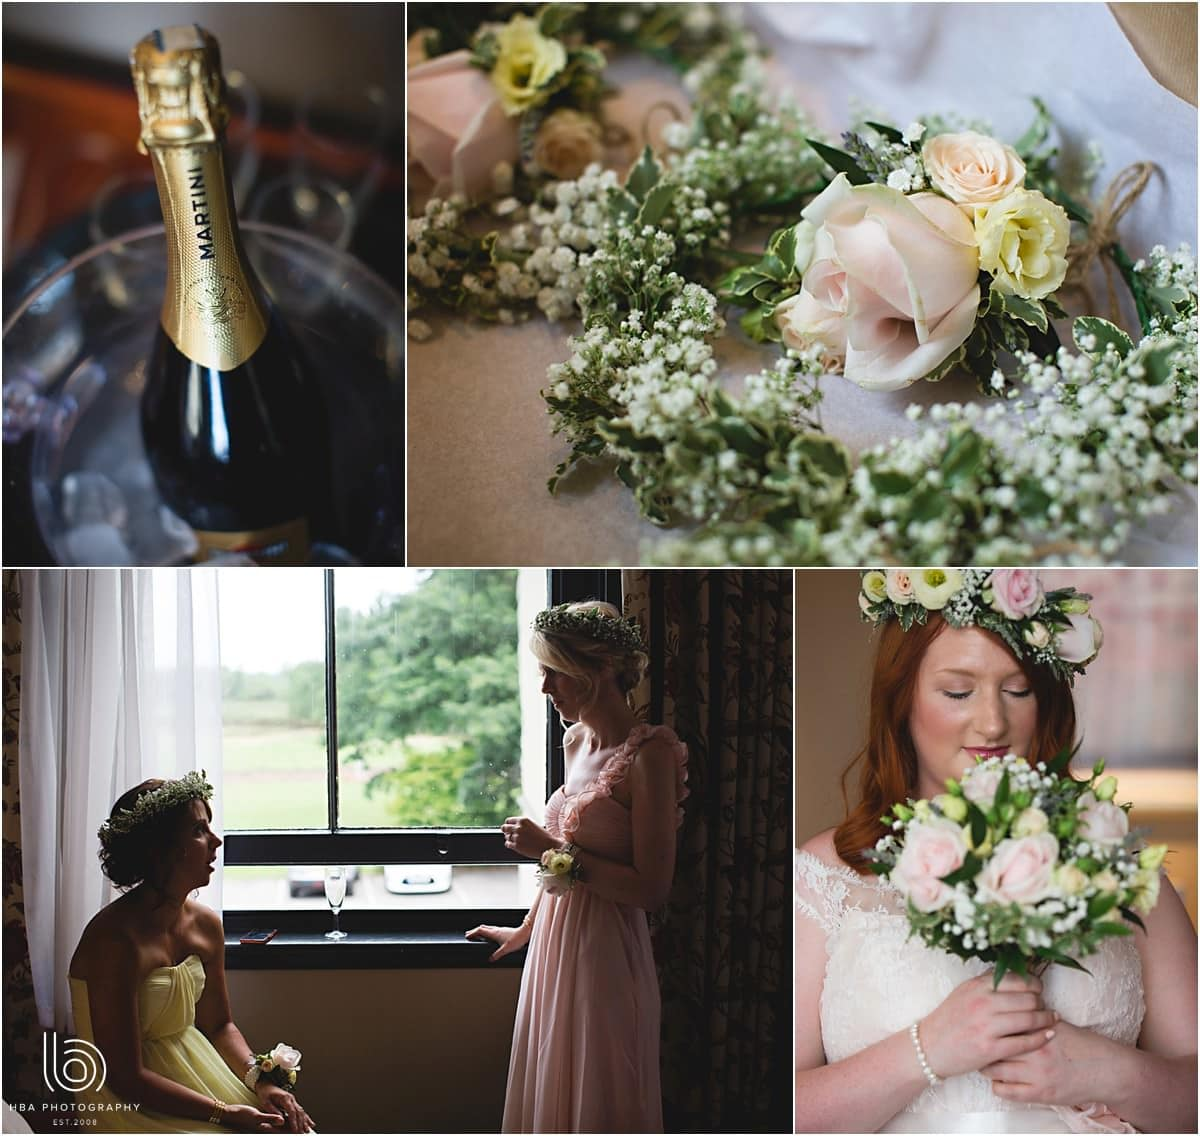 photos of wedding details - pastel flowers and bubbly